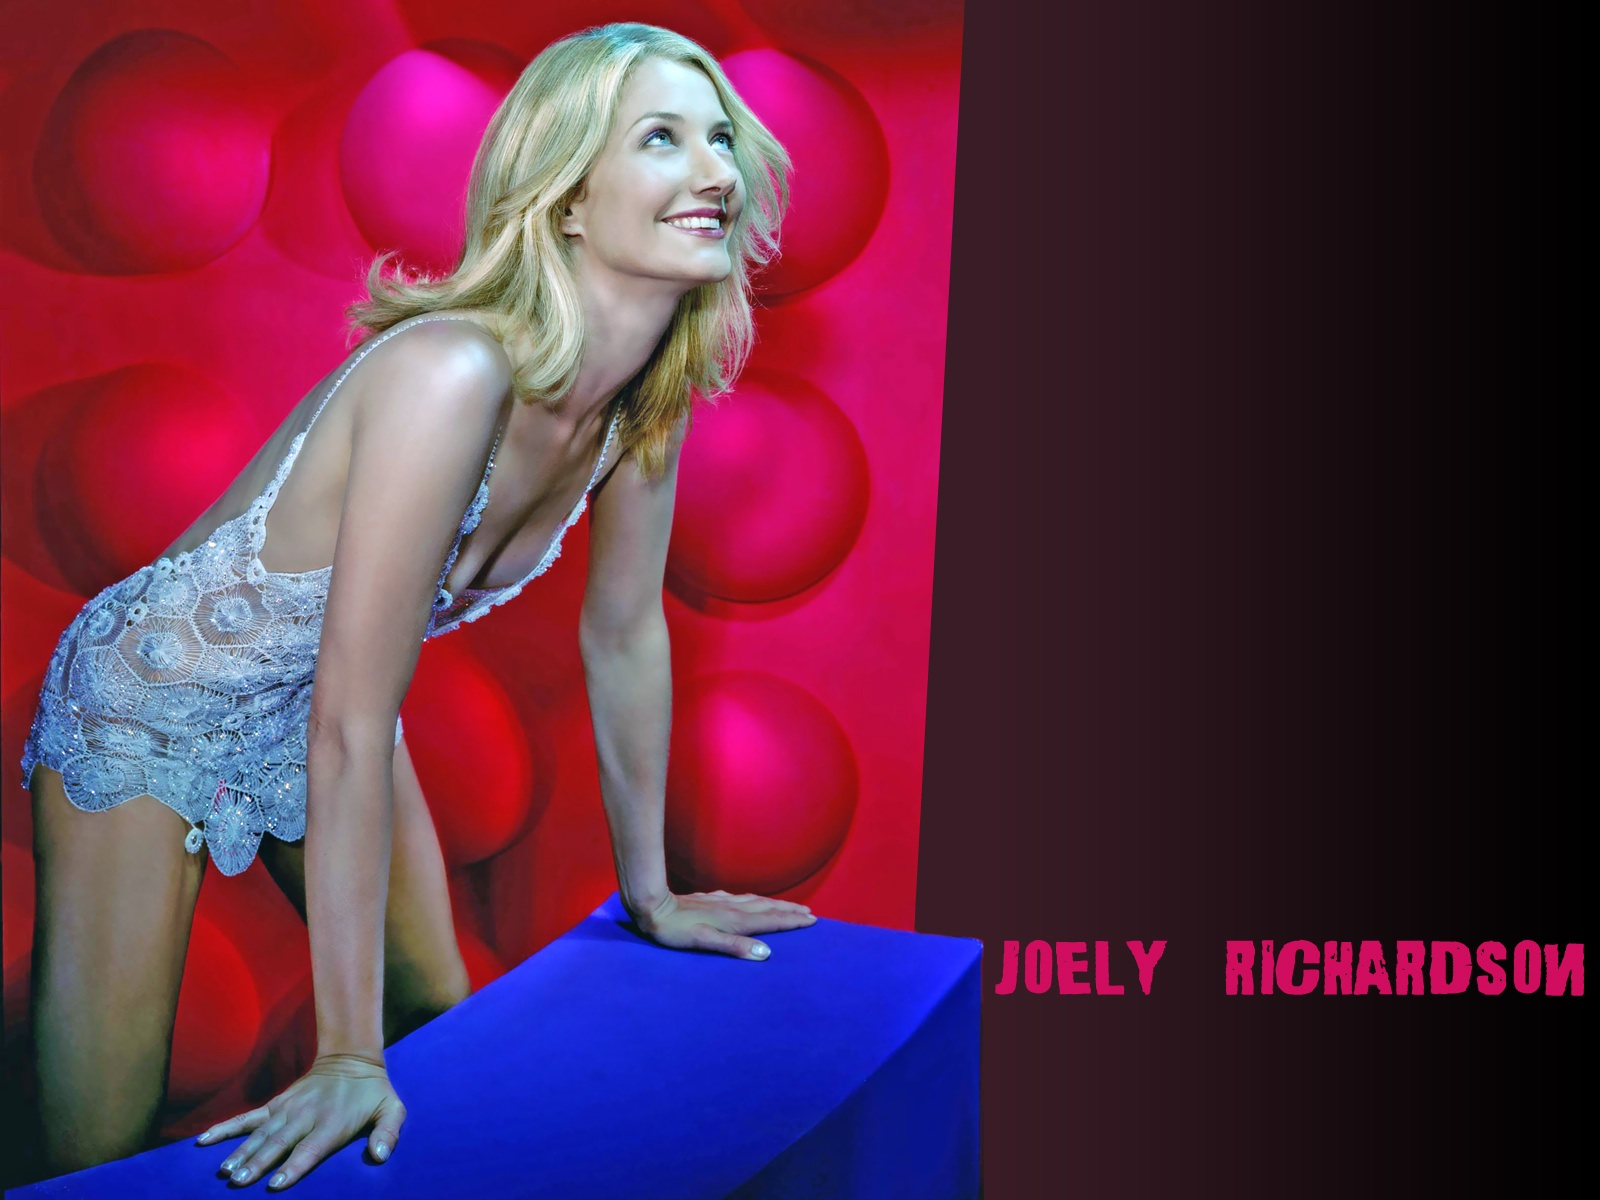 Joely Richardson Naked Pictures Celebrity Pics Sey Wallpapers Filmvz